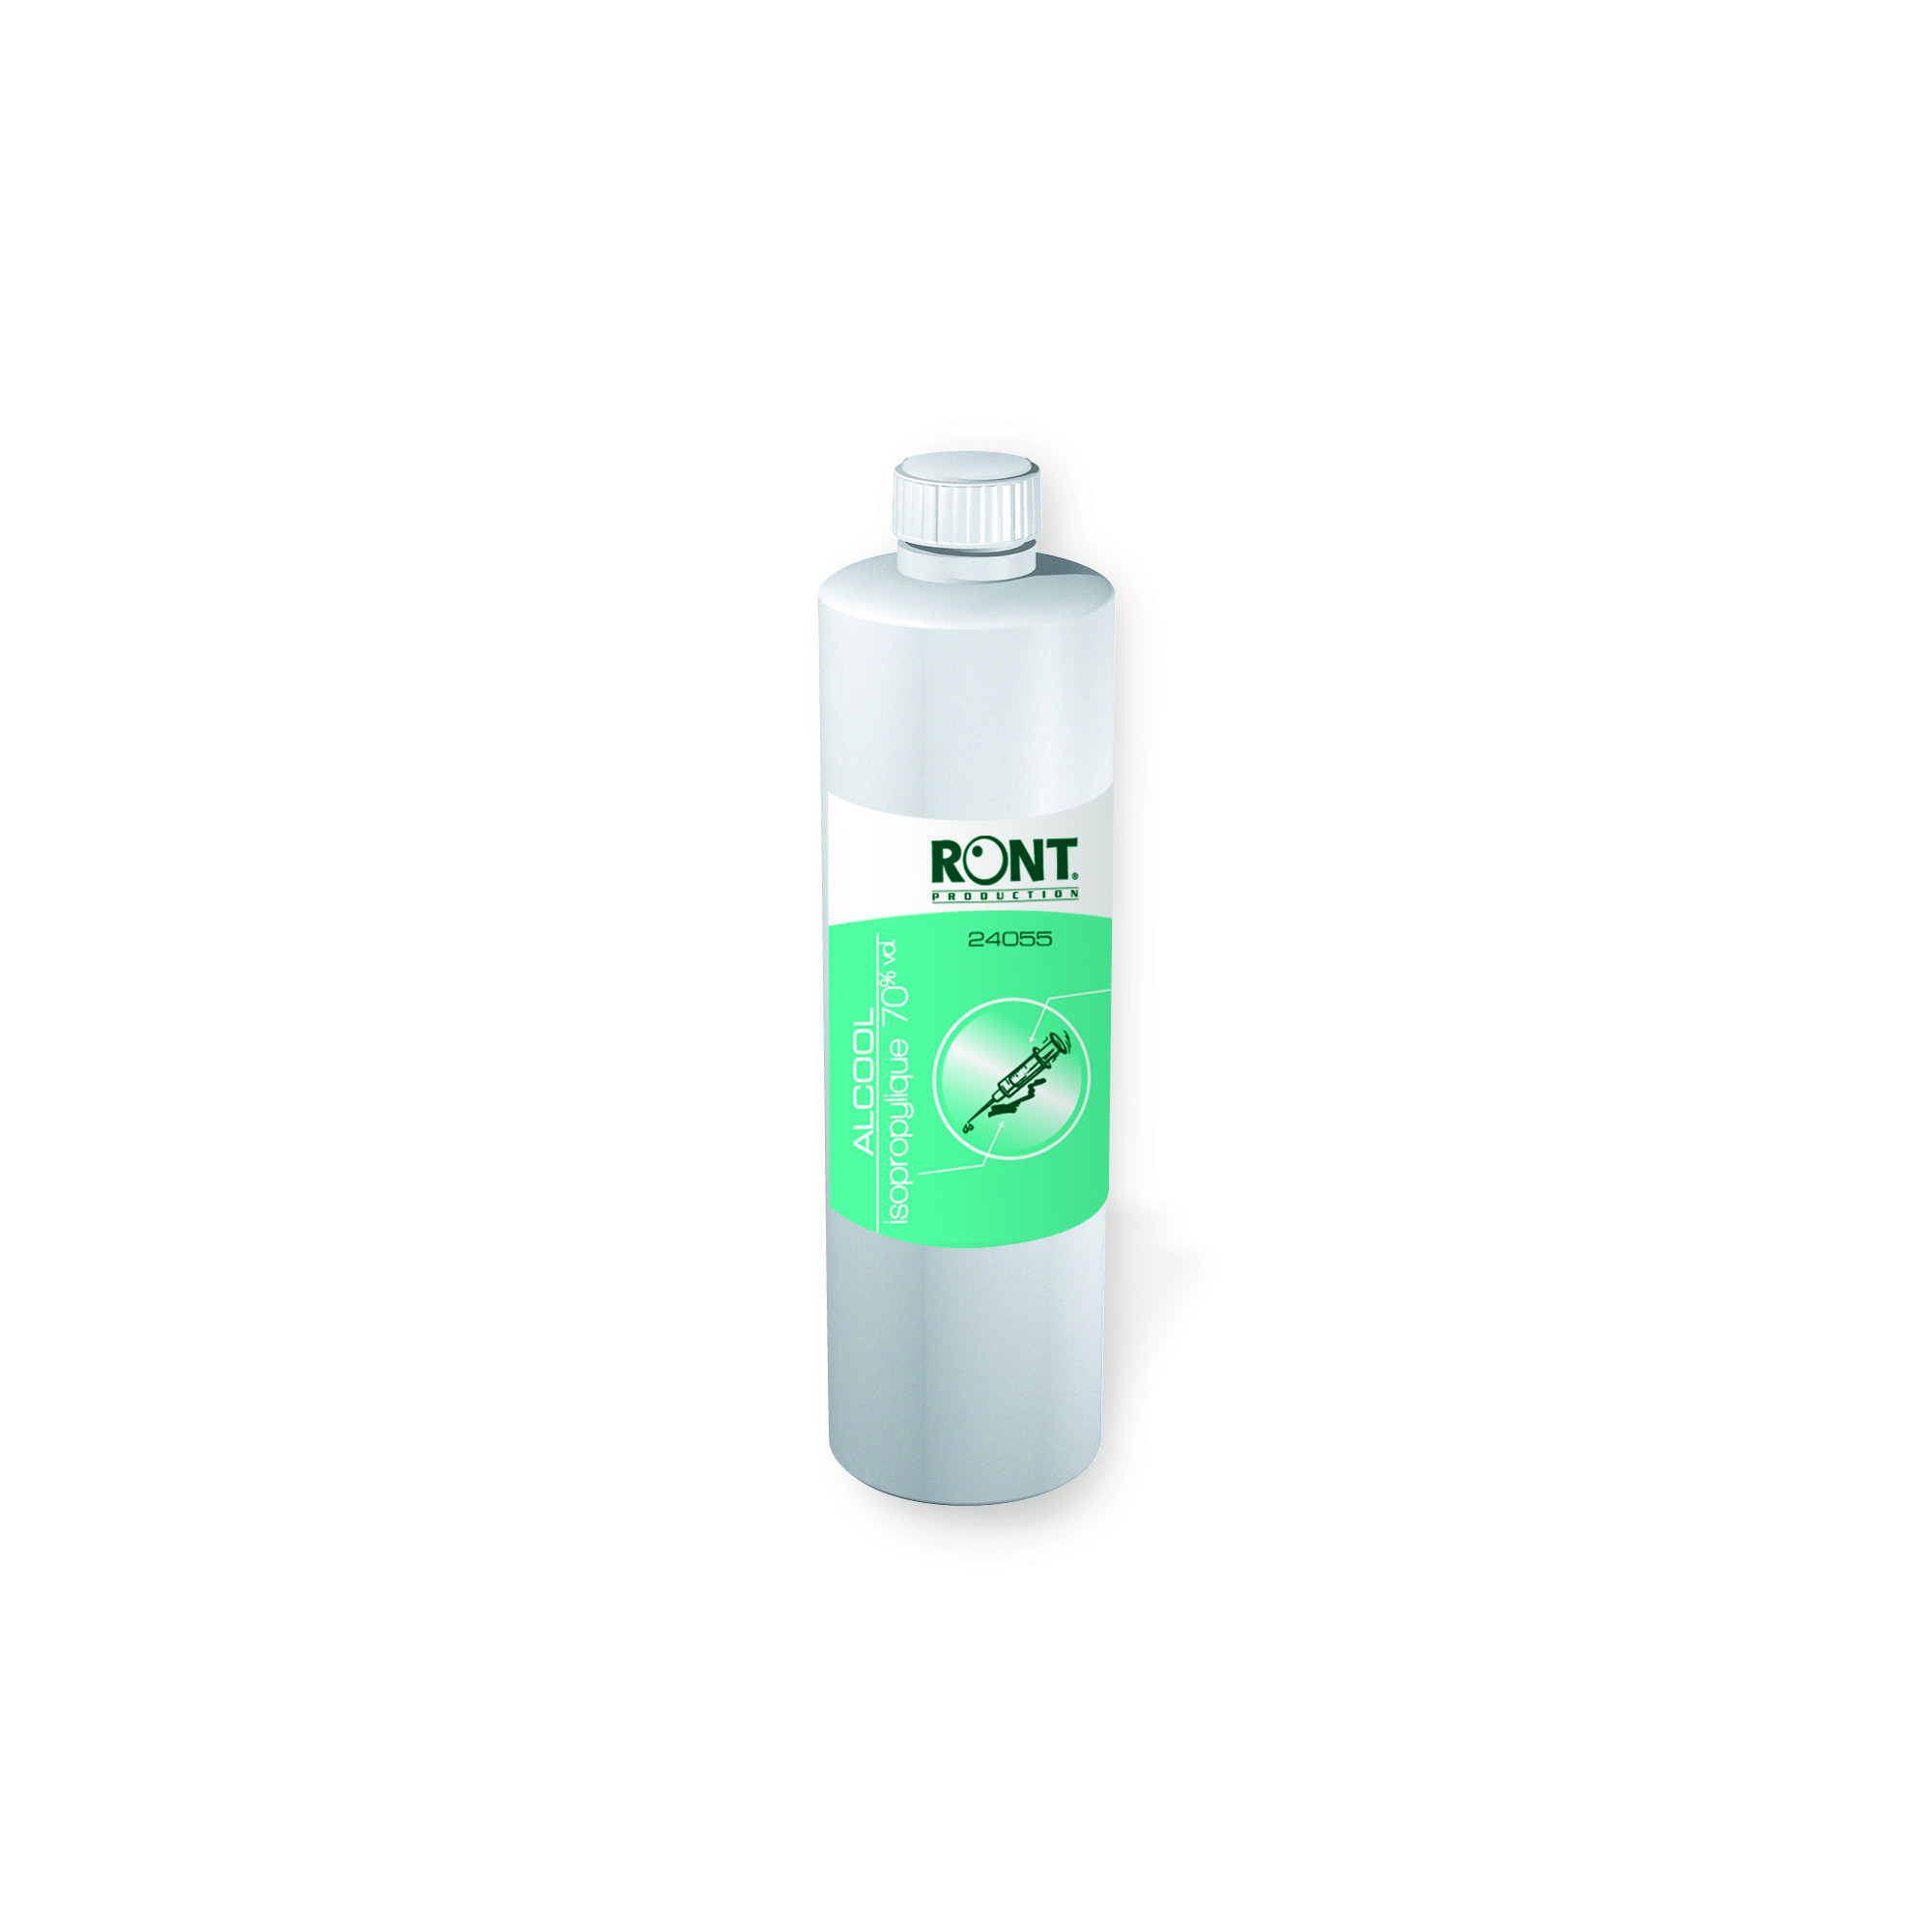 Recharge dish alcool isopropylique 70% - 500 ml - Ront